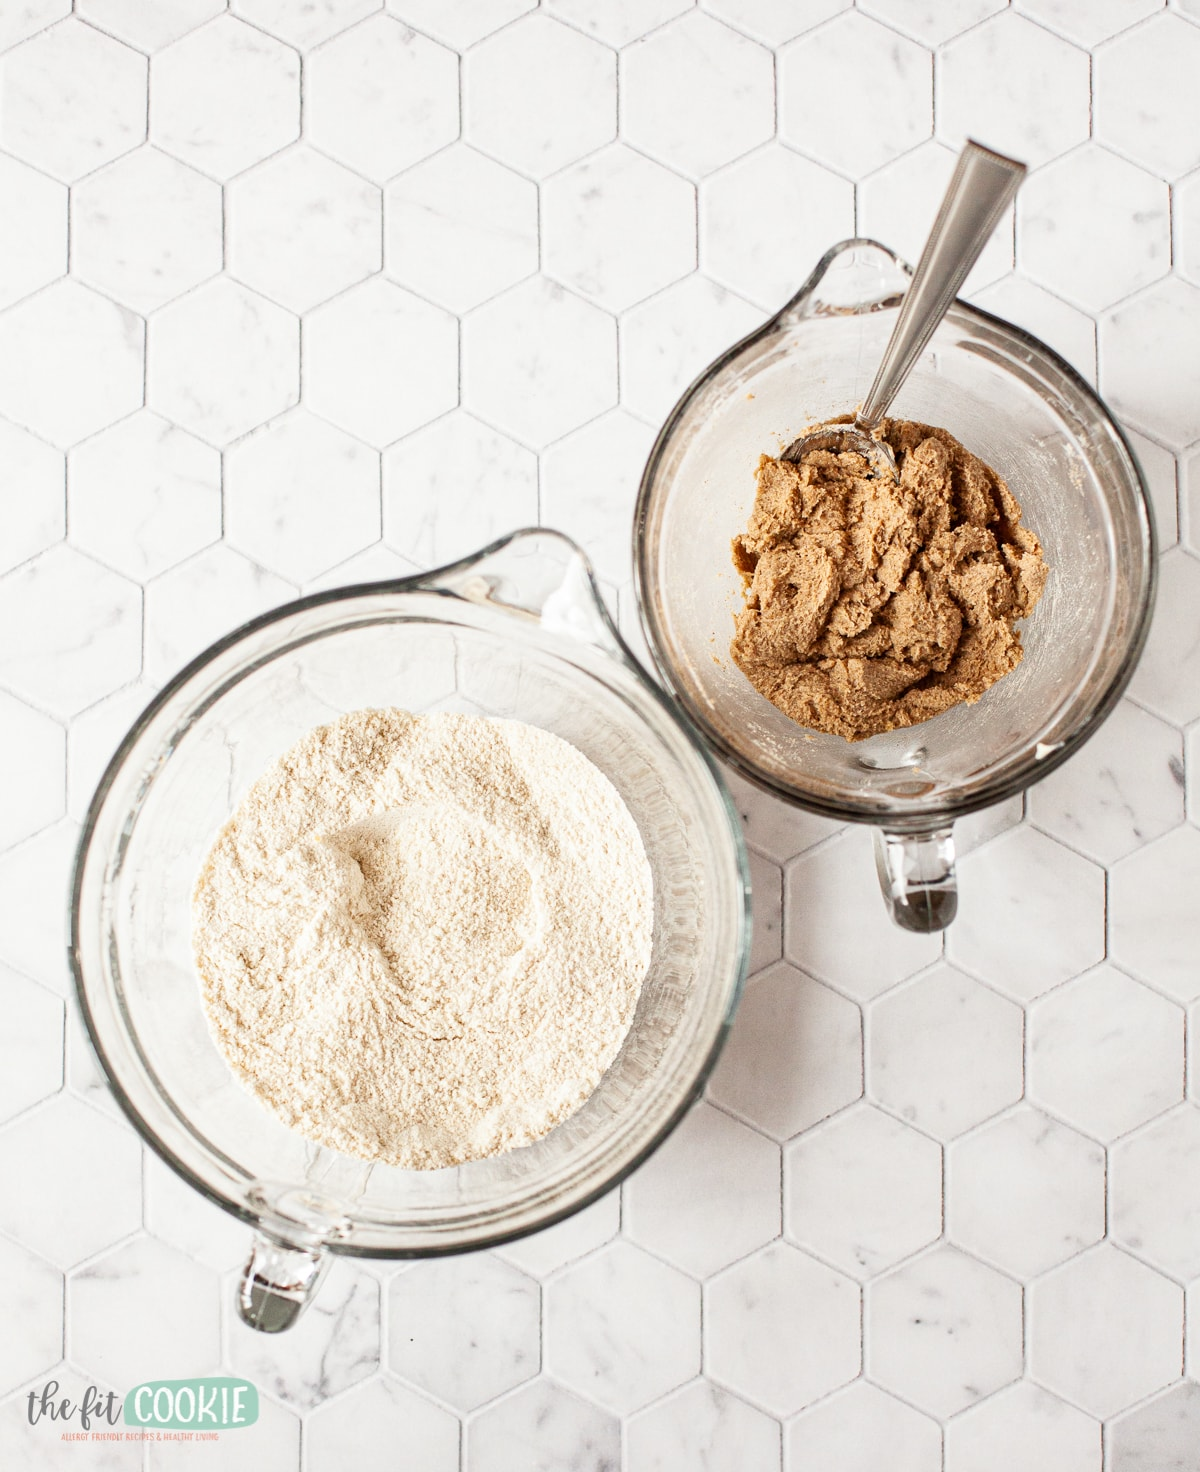 Bowl of flour next to bowl of cinnamon butter on tile counter